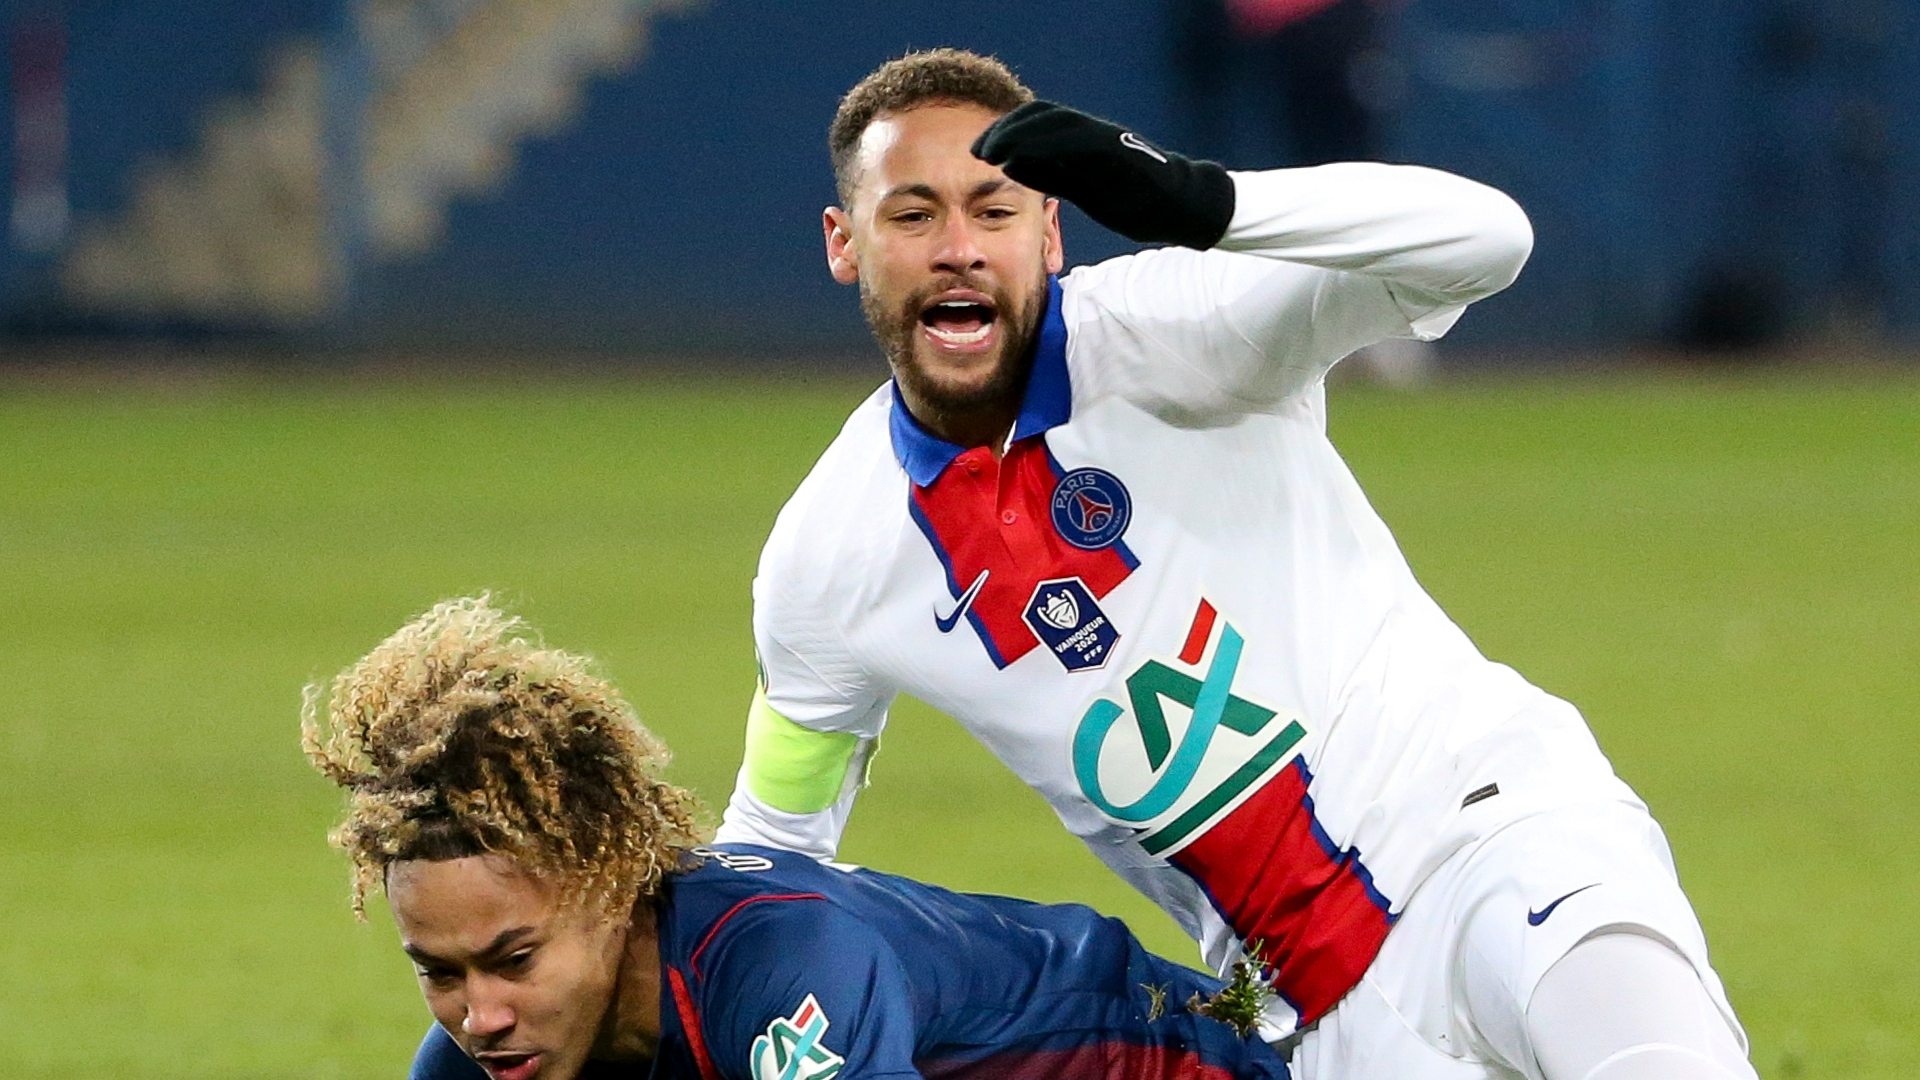 Neymar rejects 'cry baby' tag as PSG star reels after latest injury setback